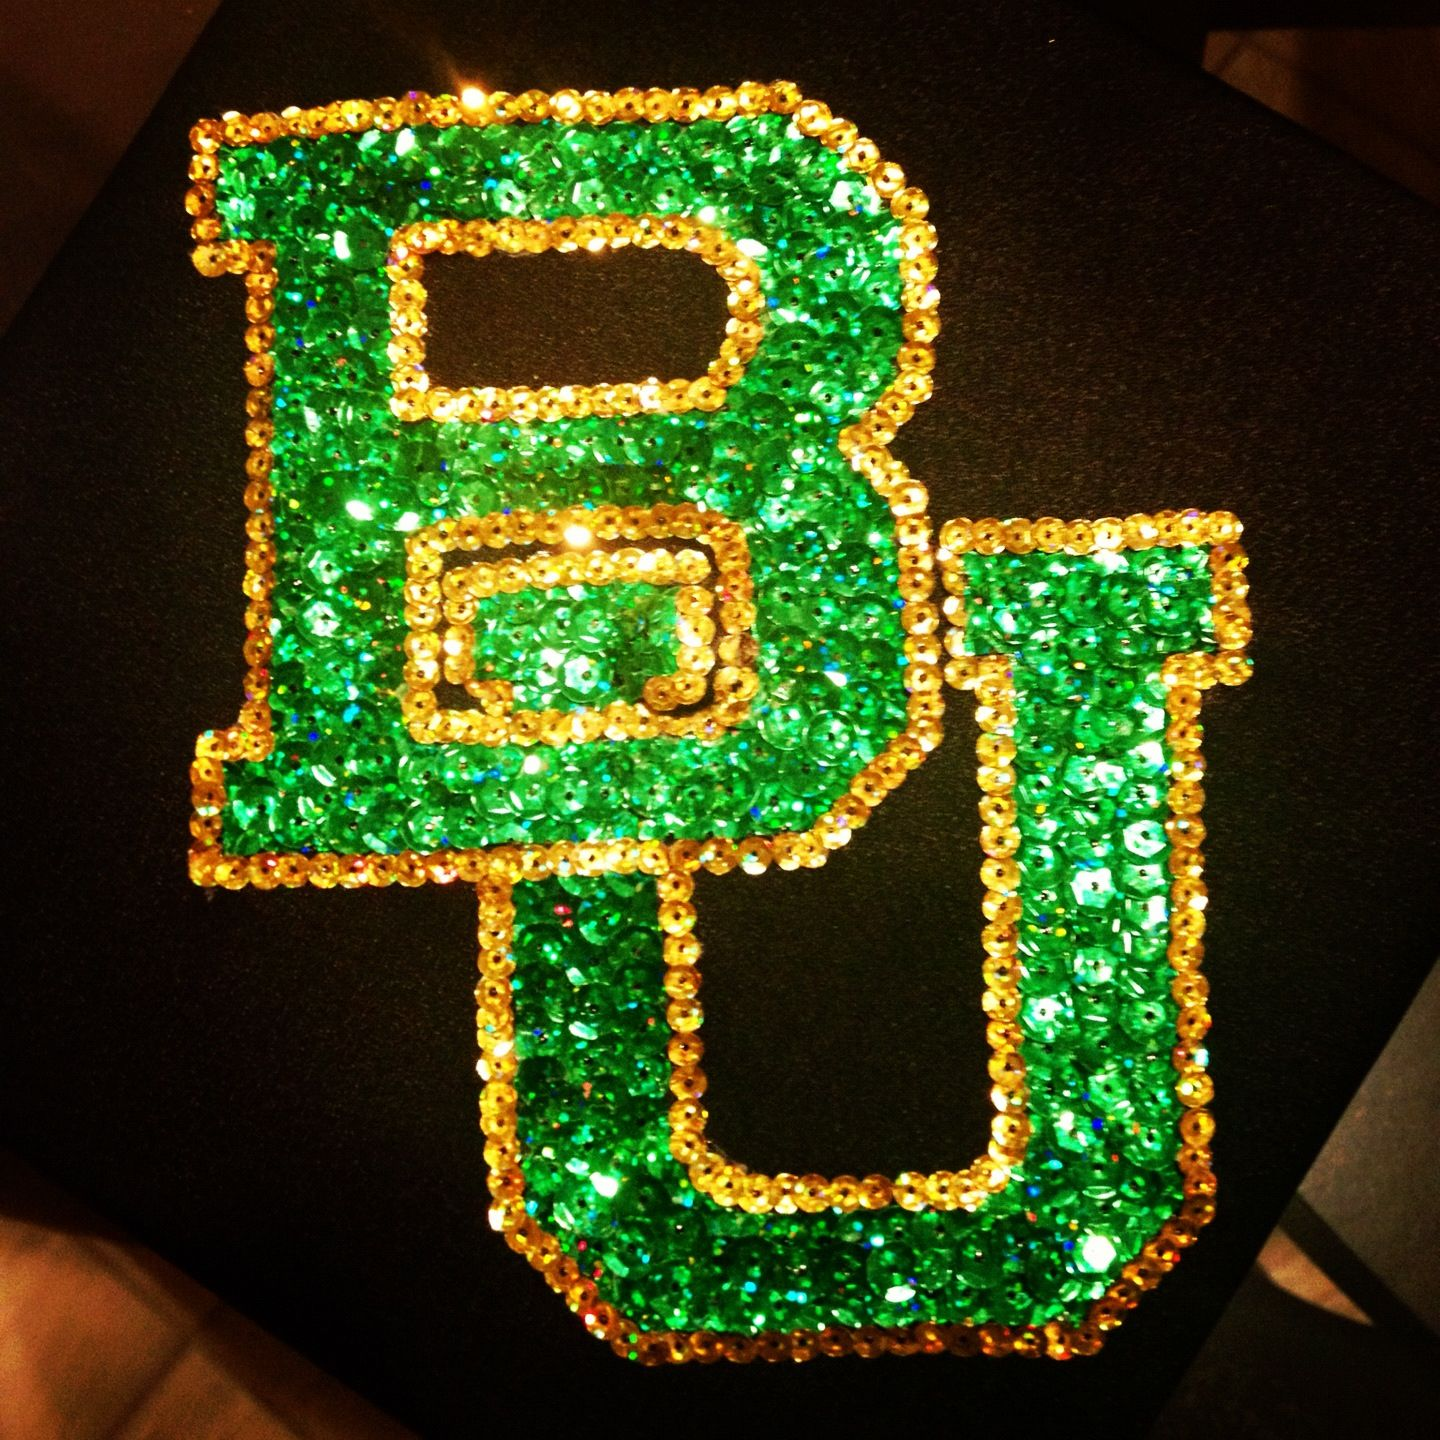 #Baylor graduation cap! made it by hot gluing on individual sequins one at a time.